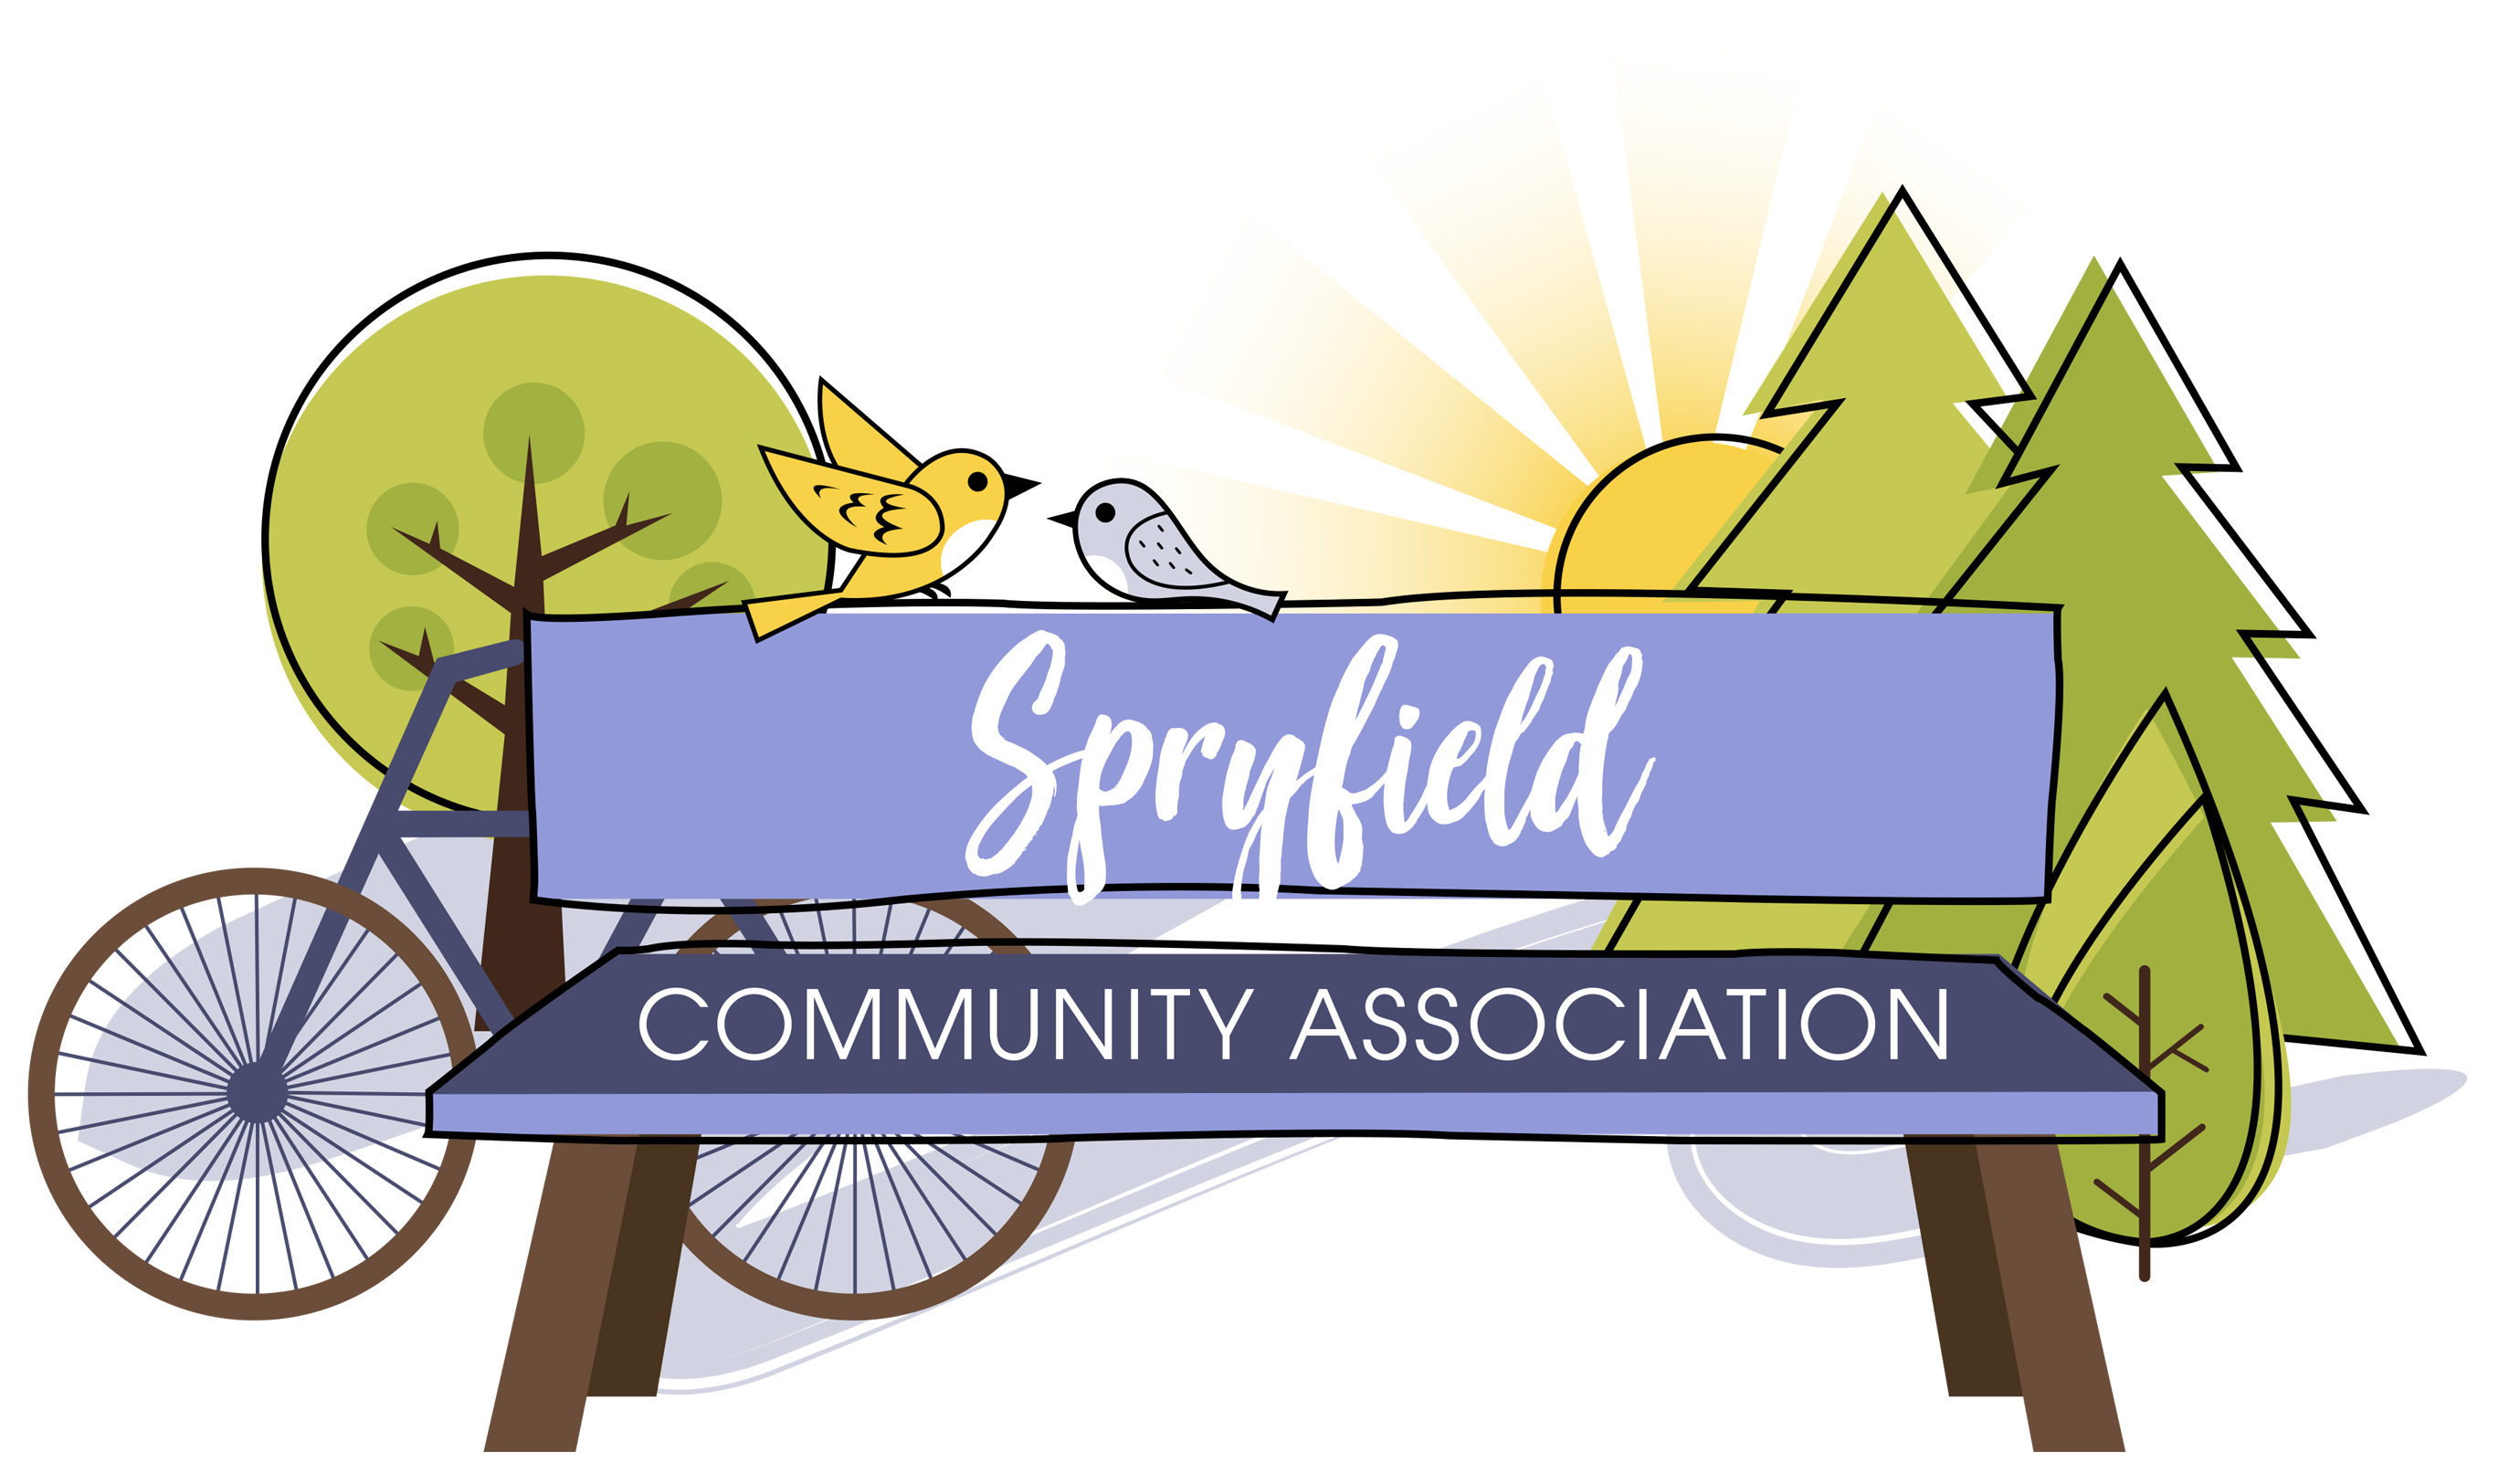 Spryfield Community Association